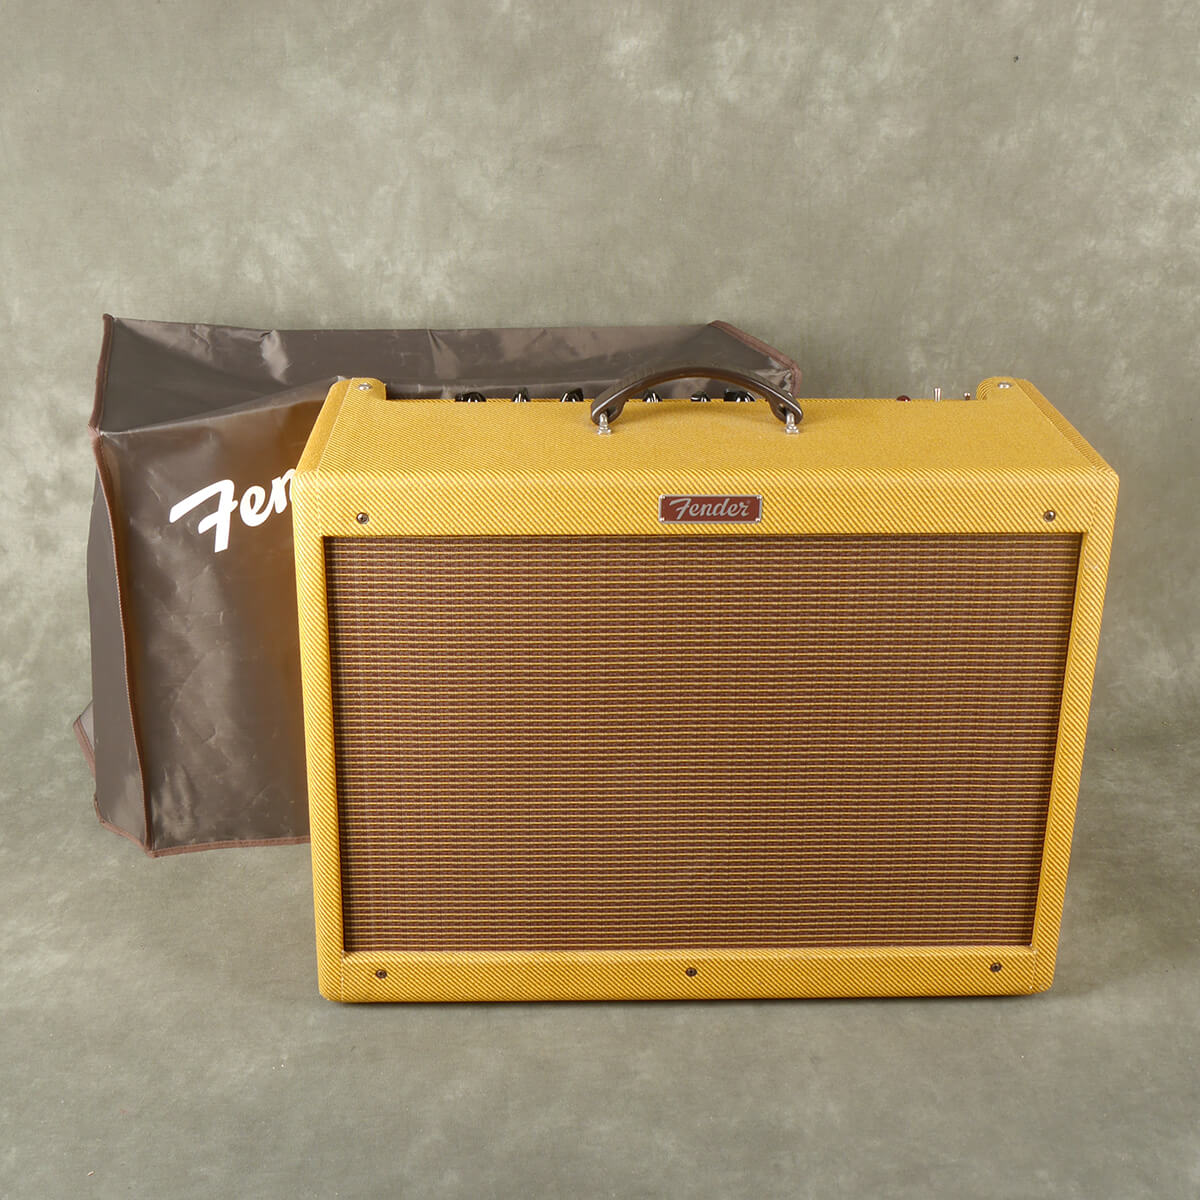 Fender Blues Deluxe Reissue Valve Amp w/Cover - 2nd Hand **COLLECTION ONLY**